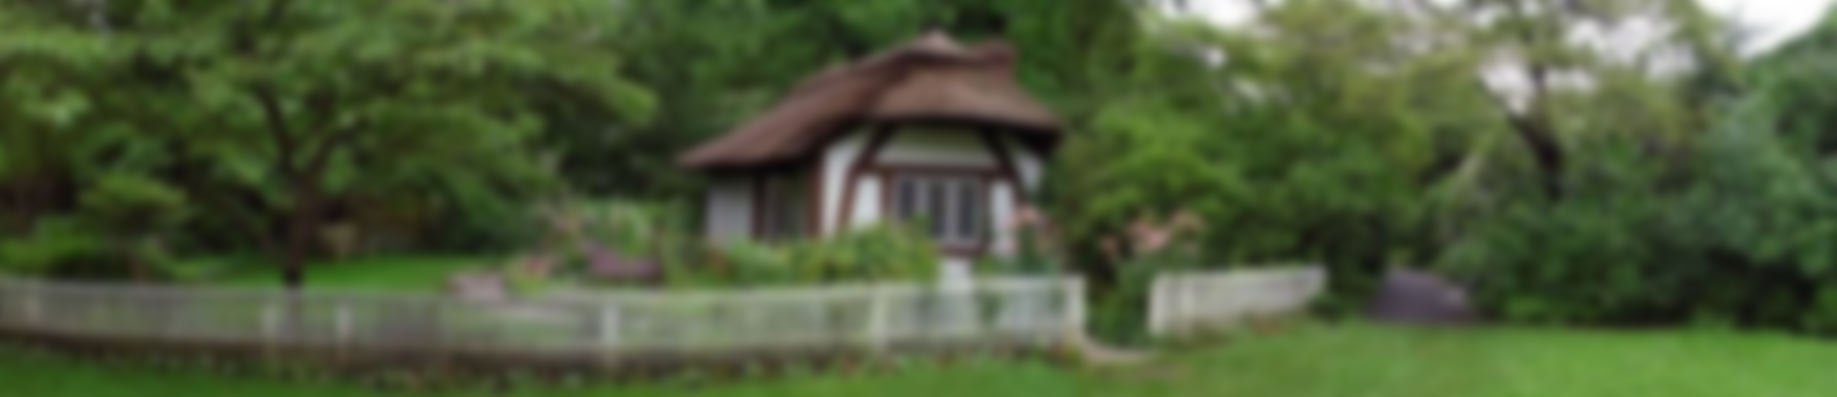 slide-cottage-blur